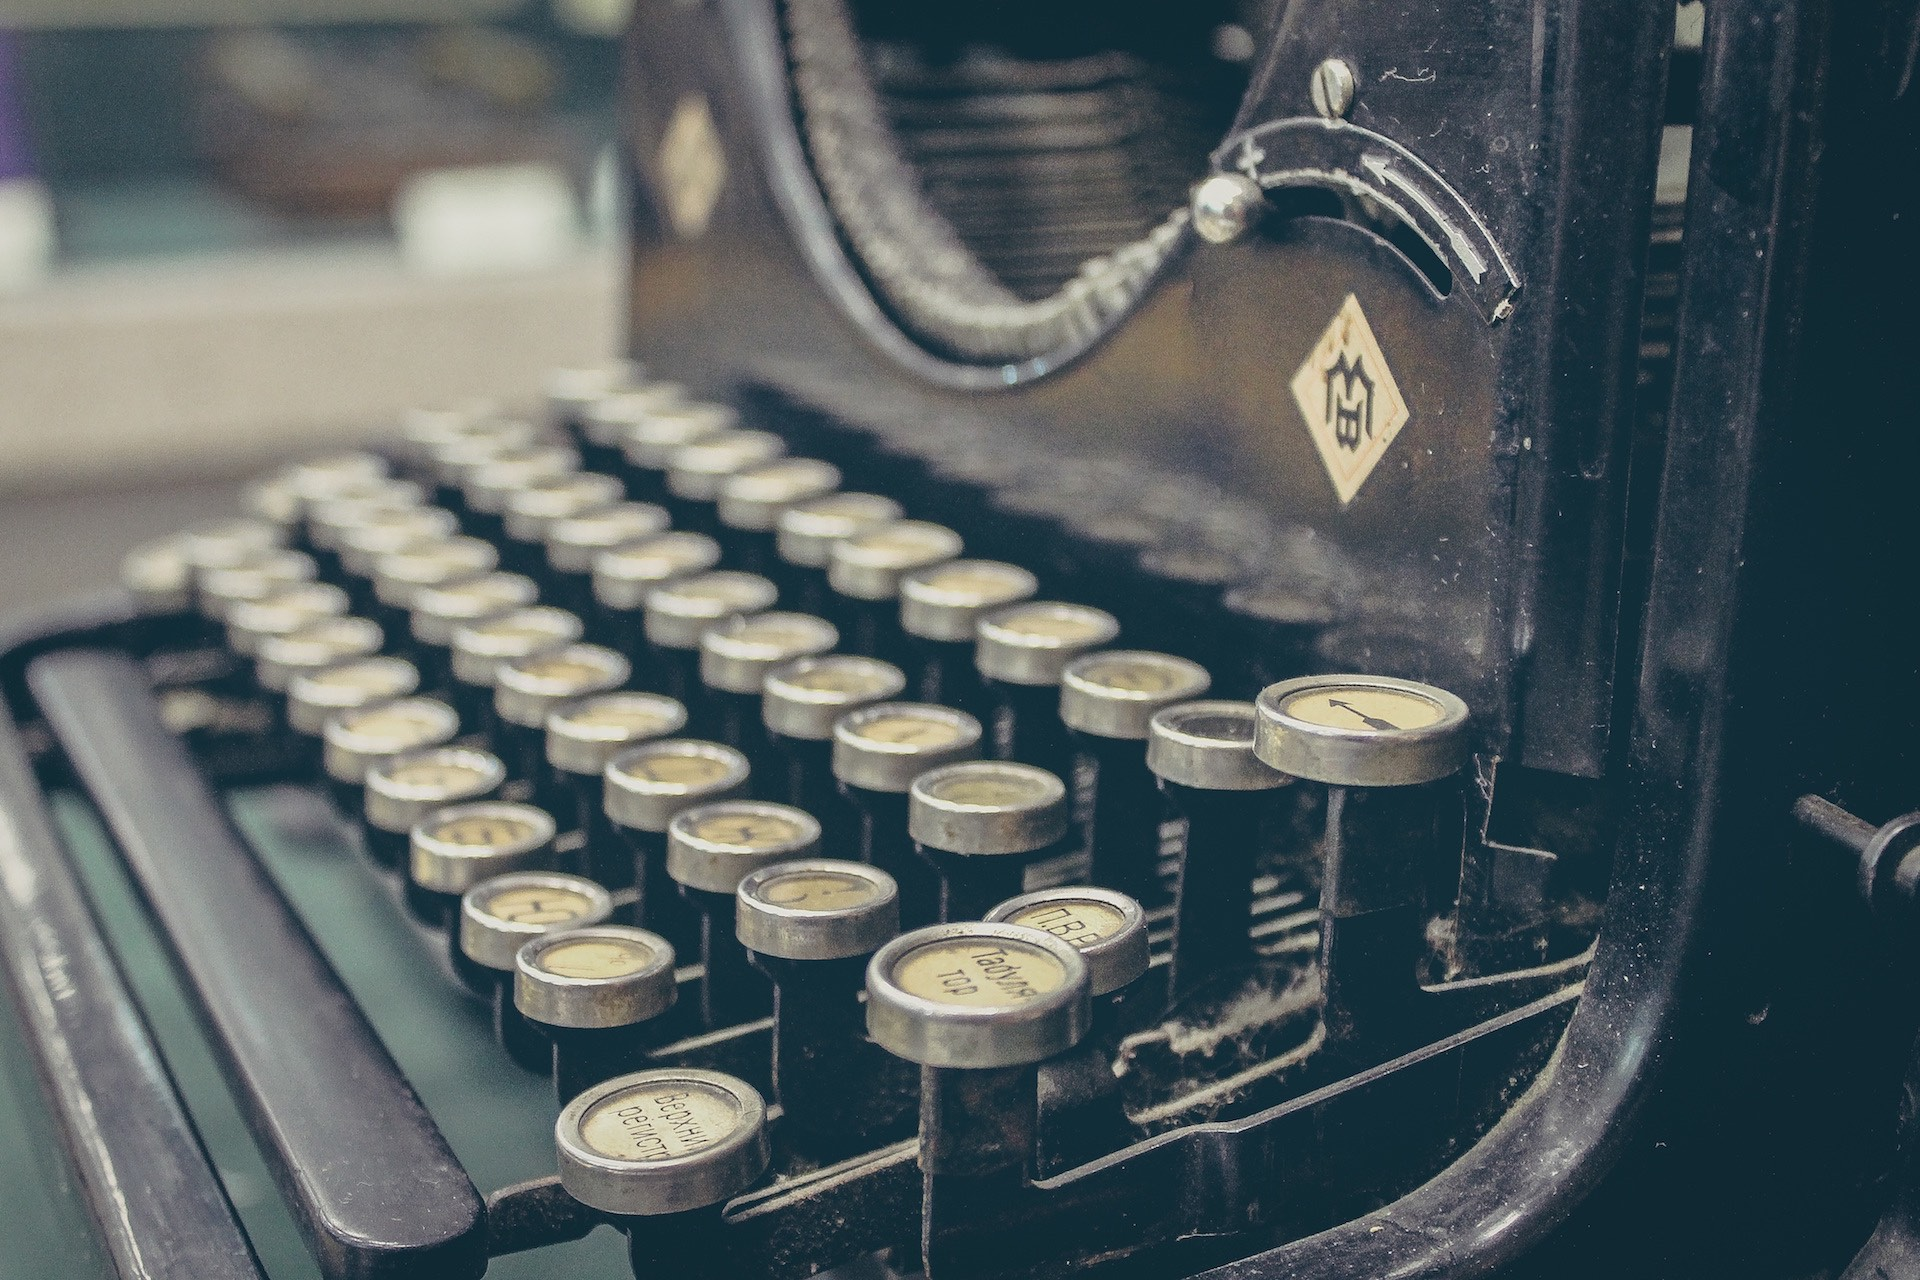 How to Write Better Short Stories and Get Published in Lit Mags